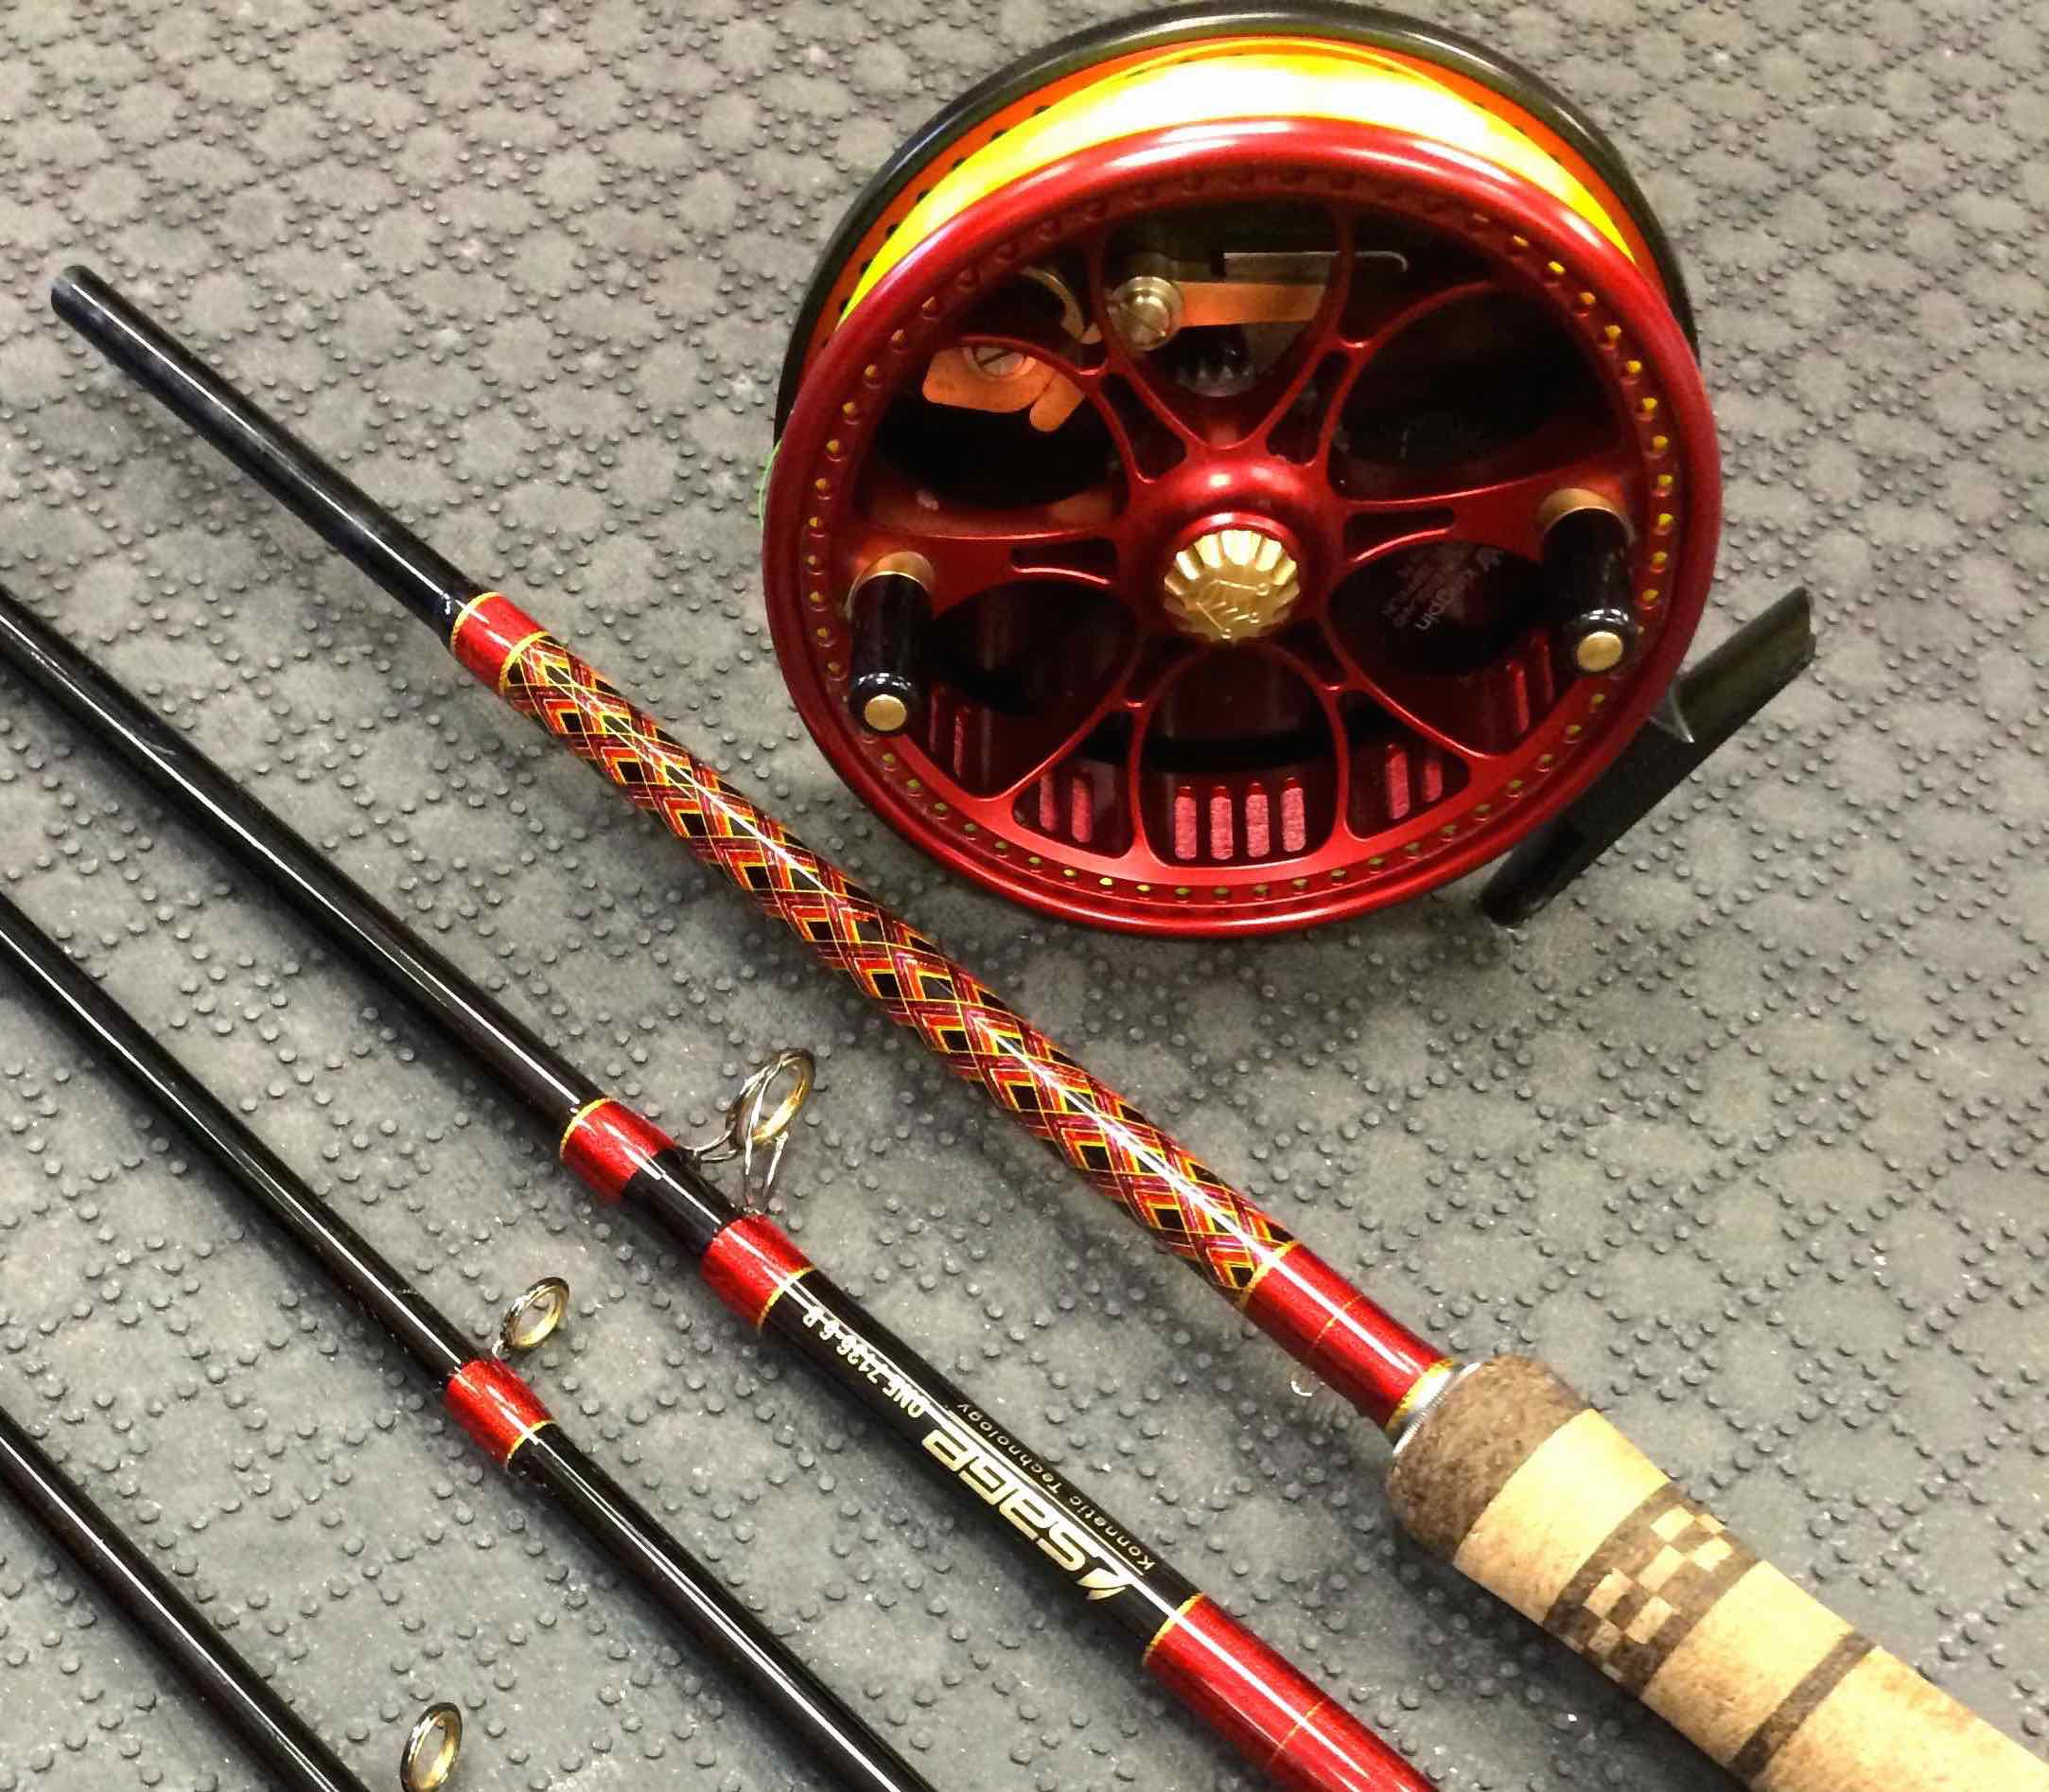 Sage One Custom 7136B-6 Custom Float Rod Build with Red Zeppelin with Butt Wrap to match